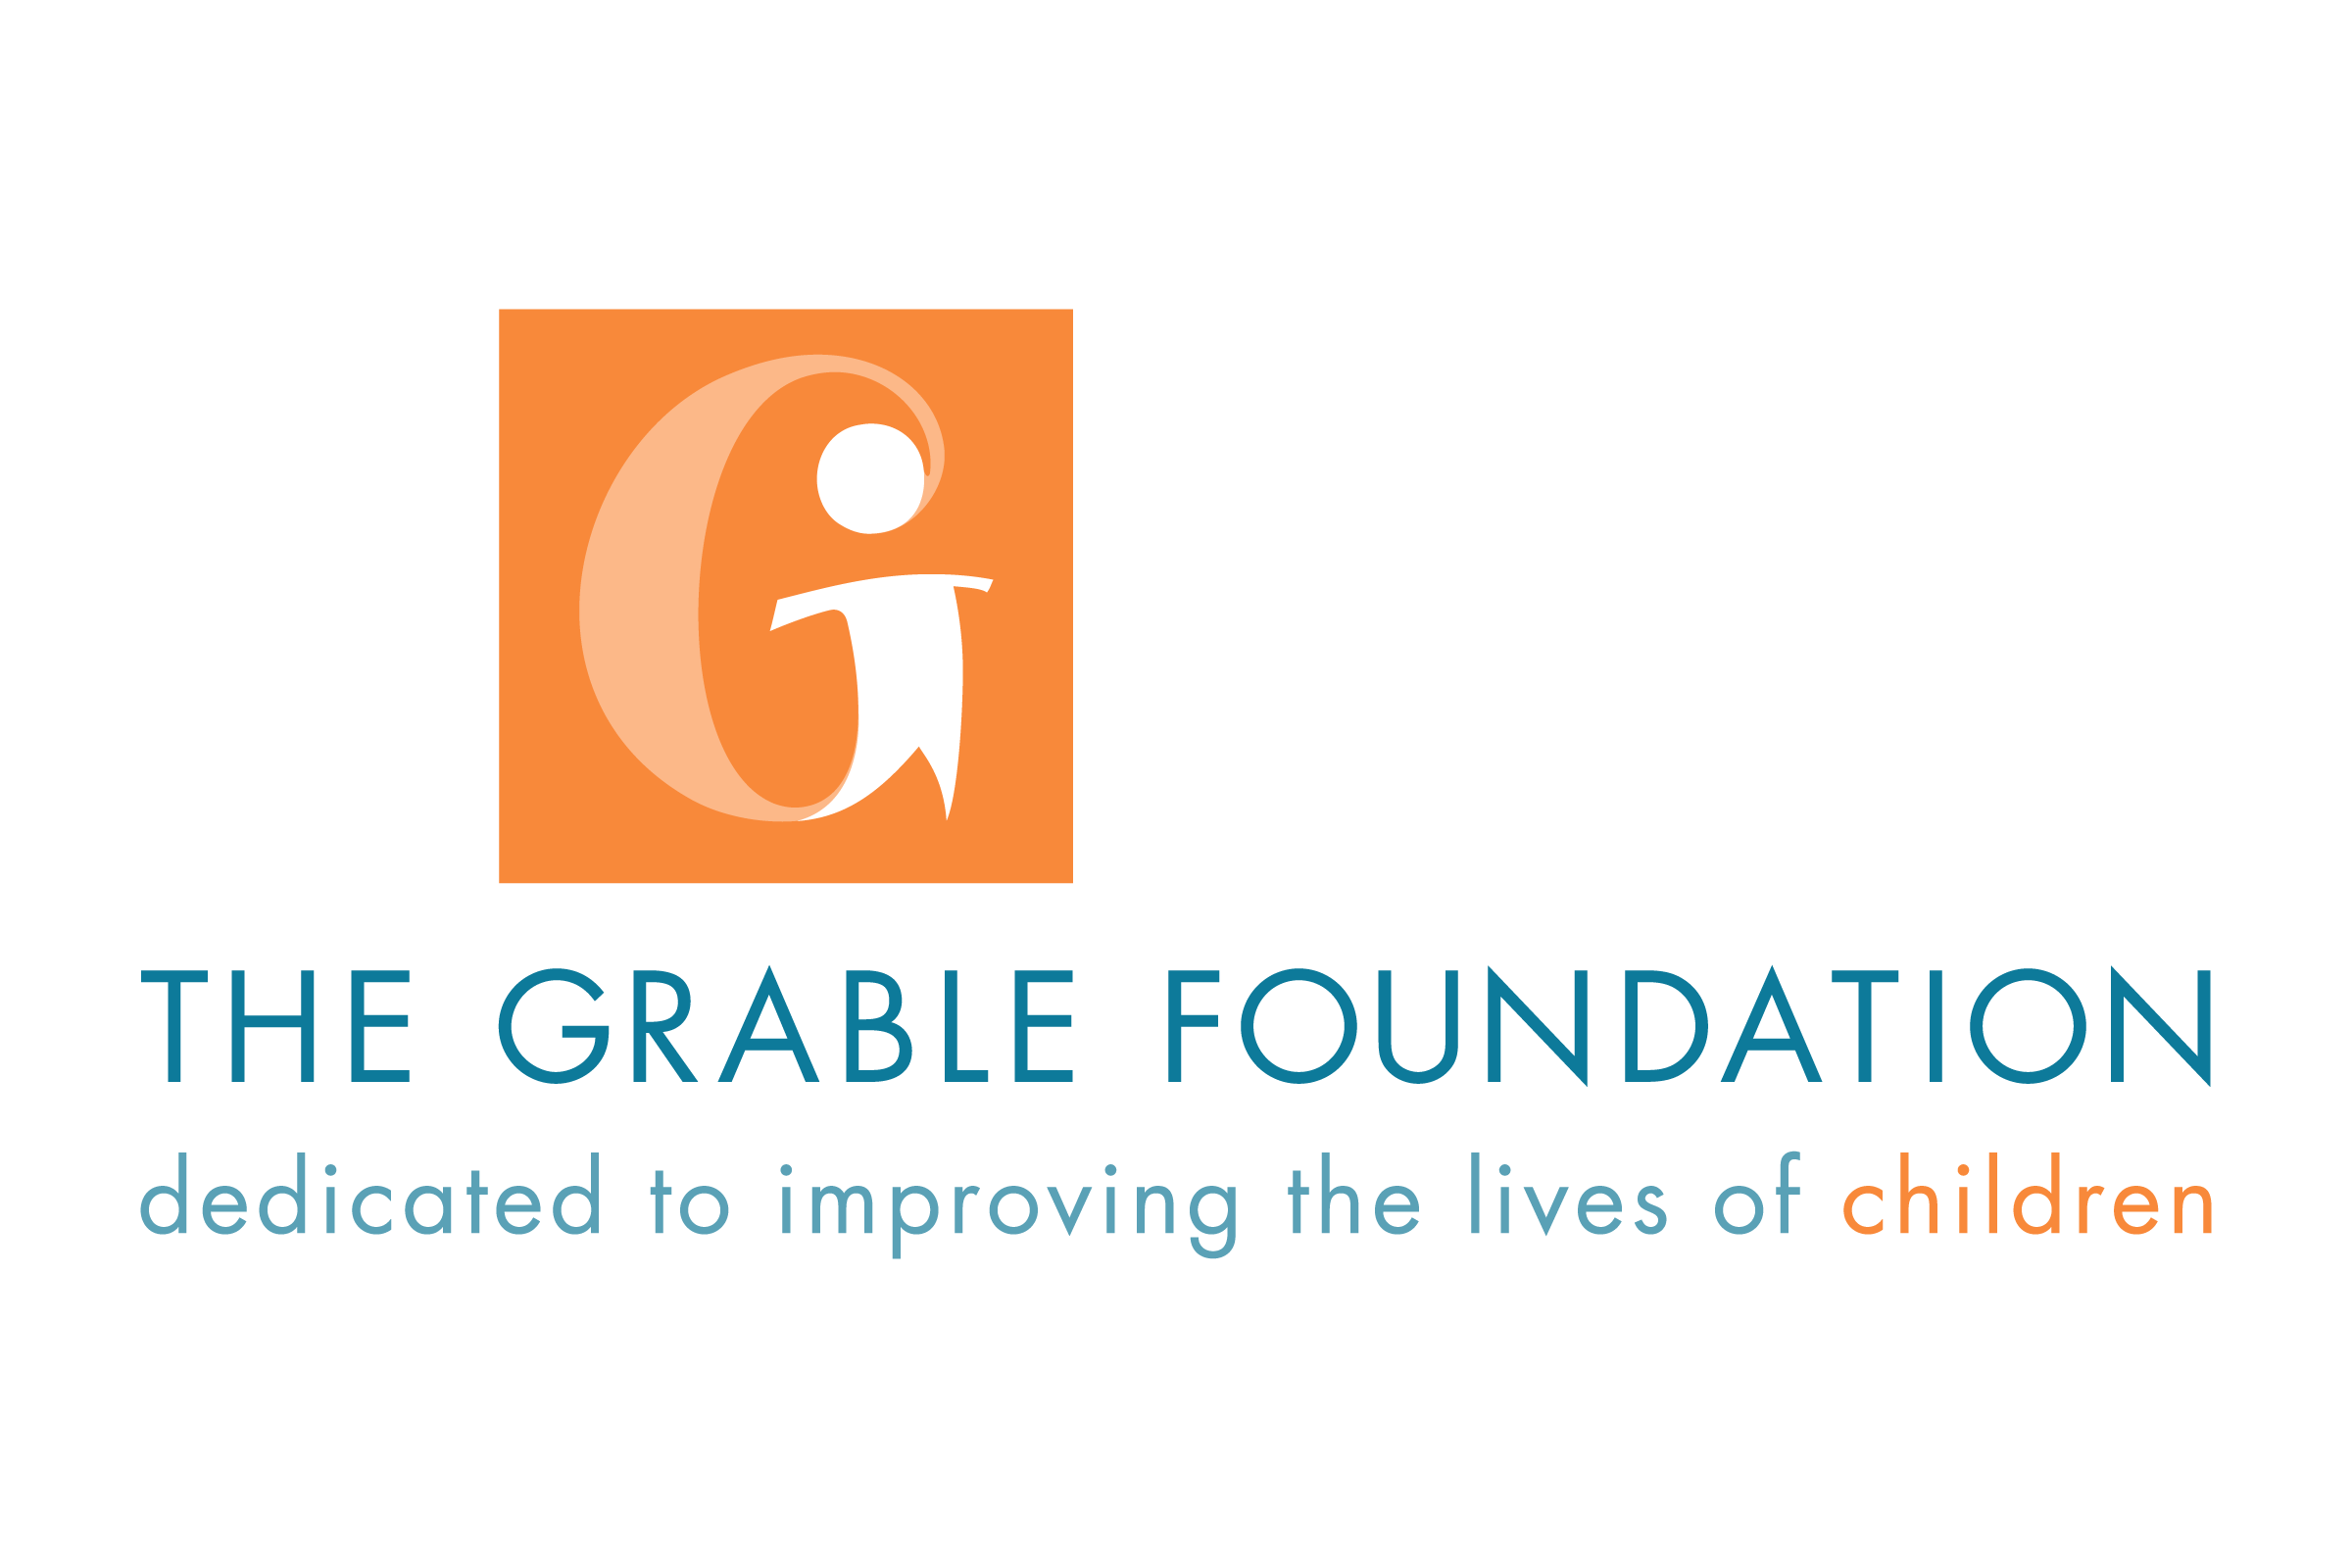 Thumbnail photo: The Grable Foundation